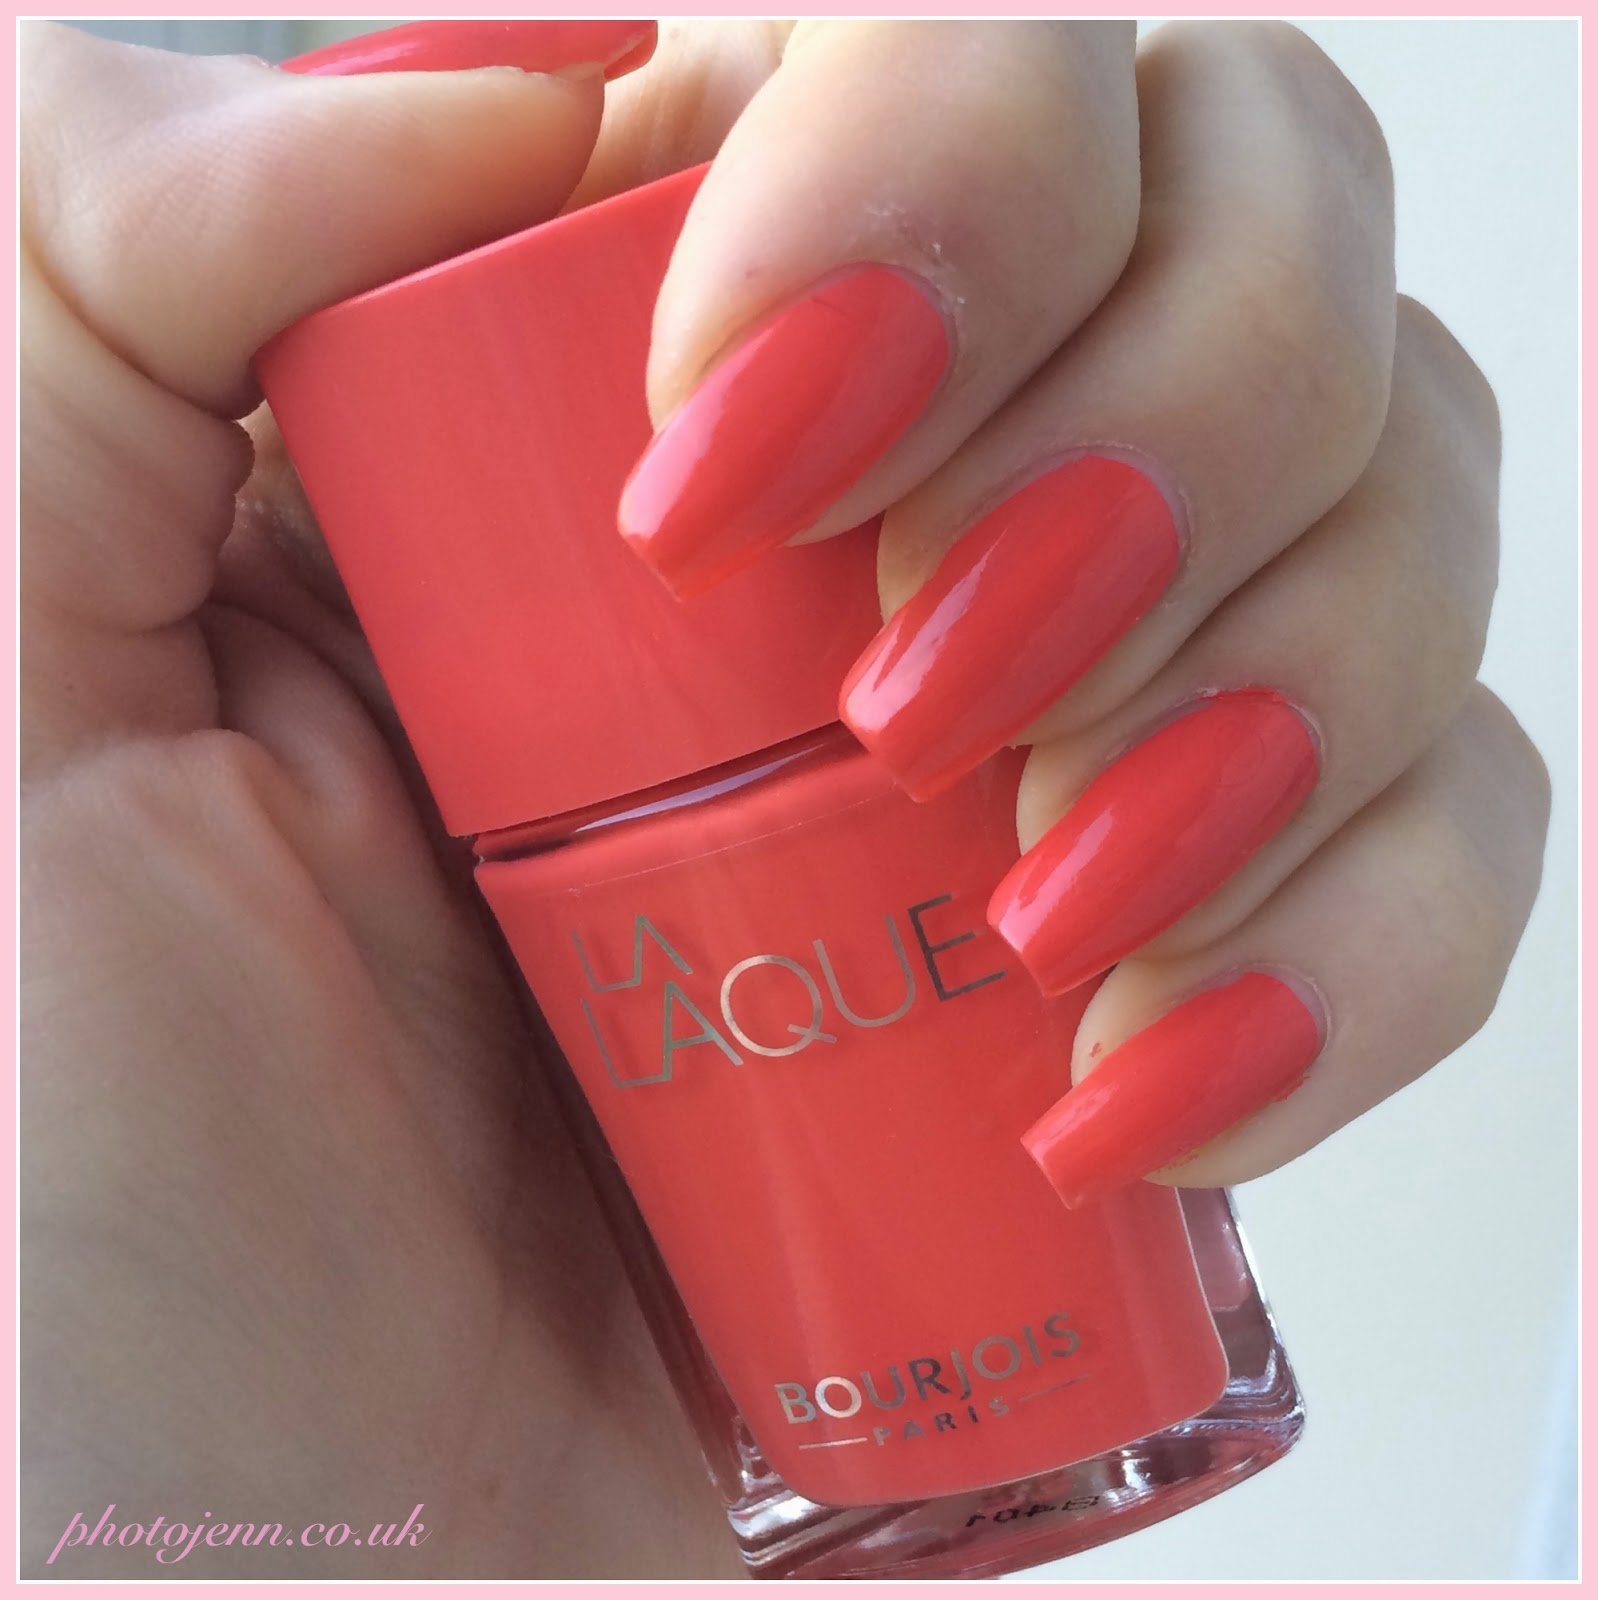 bourjois-la-laque-nail-polish-Orange-Outrant-swatch